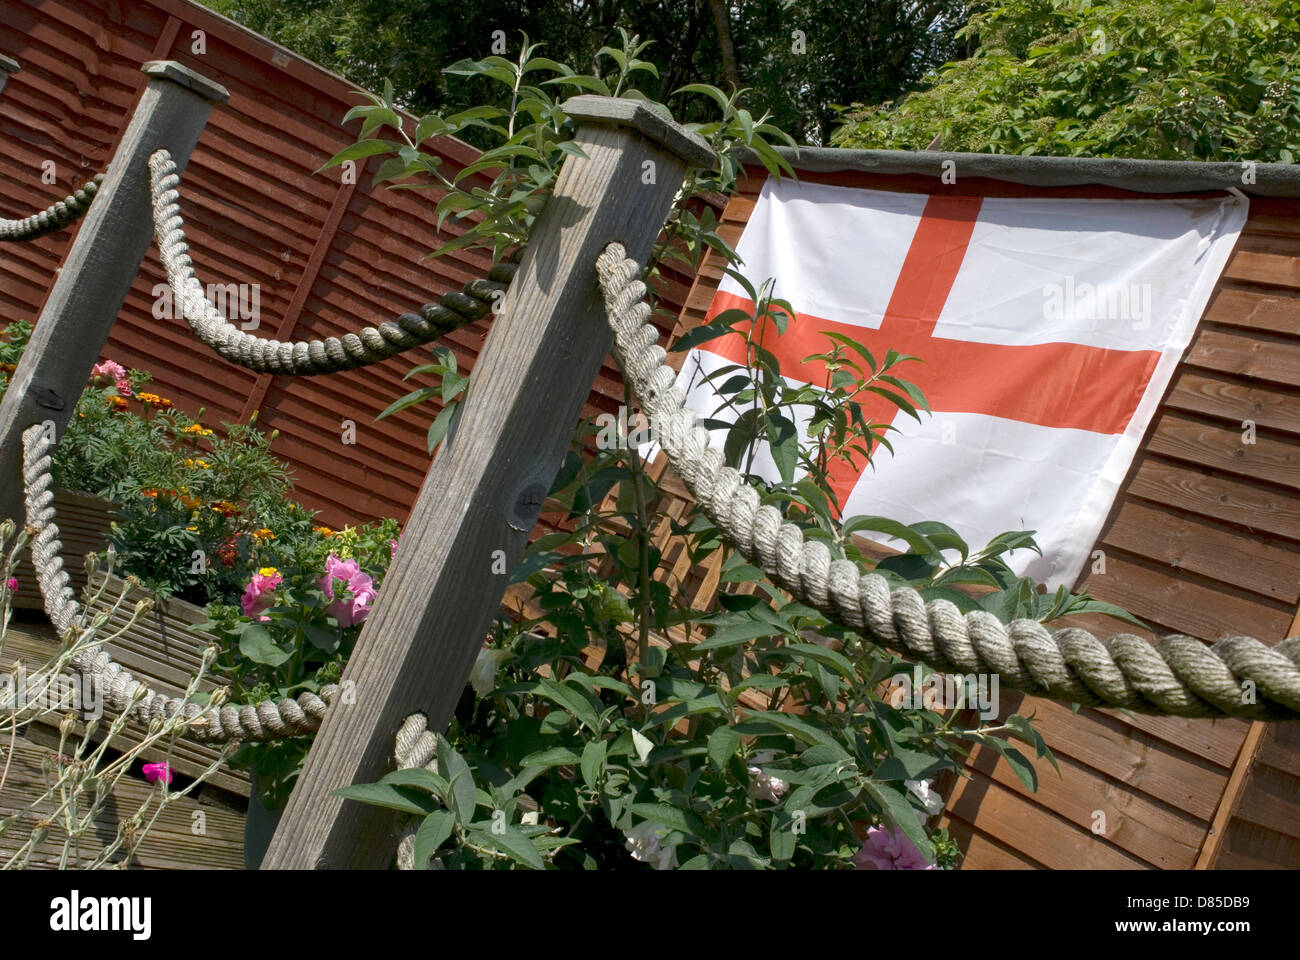 Garden Decking Posts In Spring With Rope Loops And St George Flag - Garden decking rope